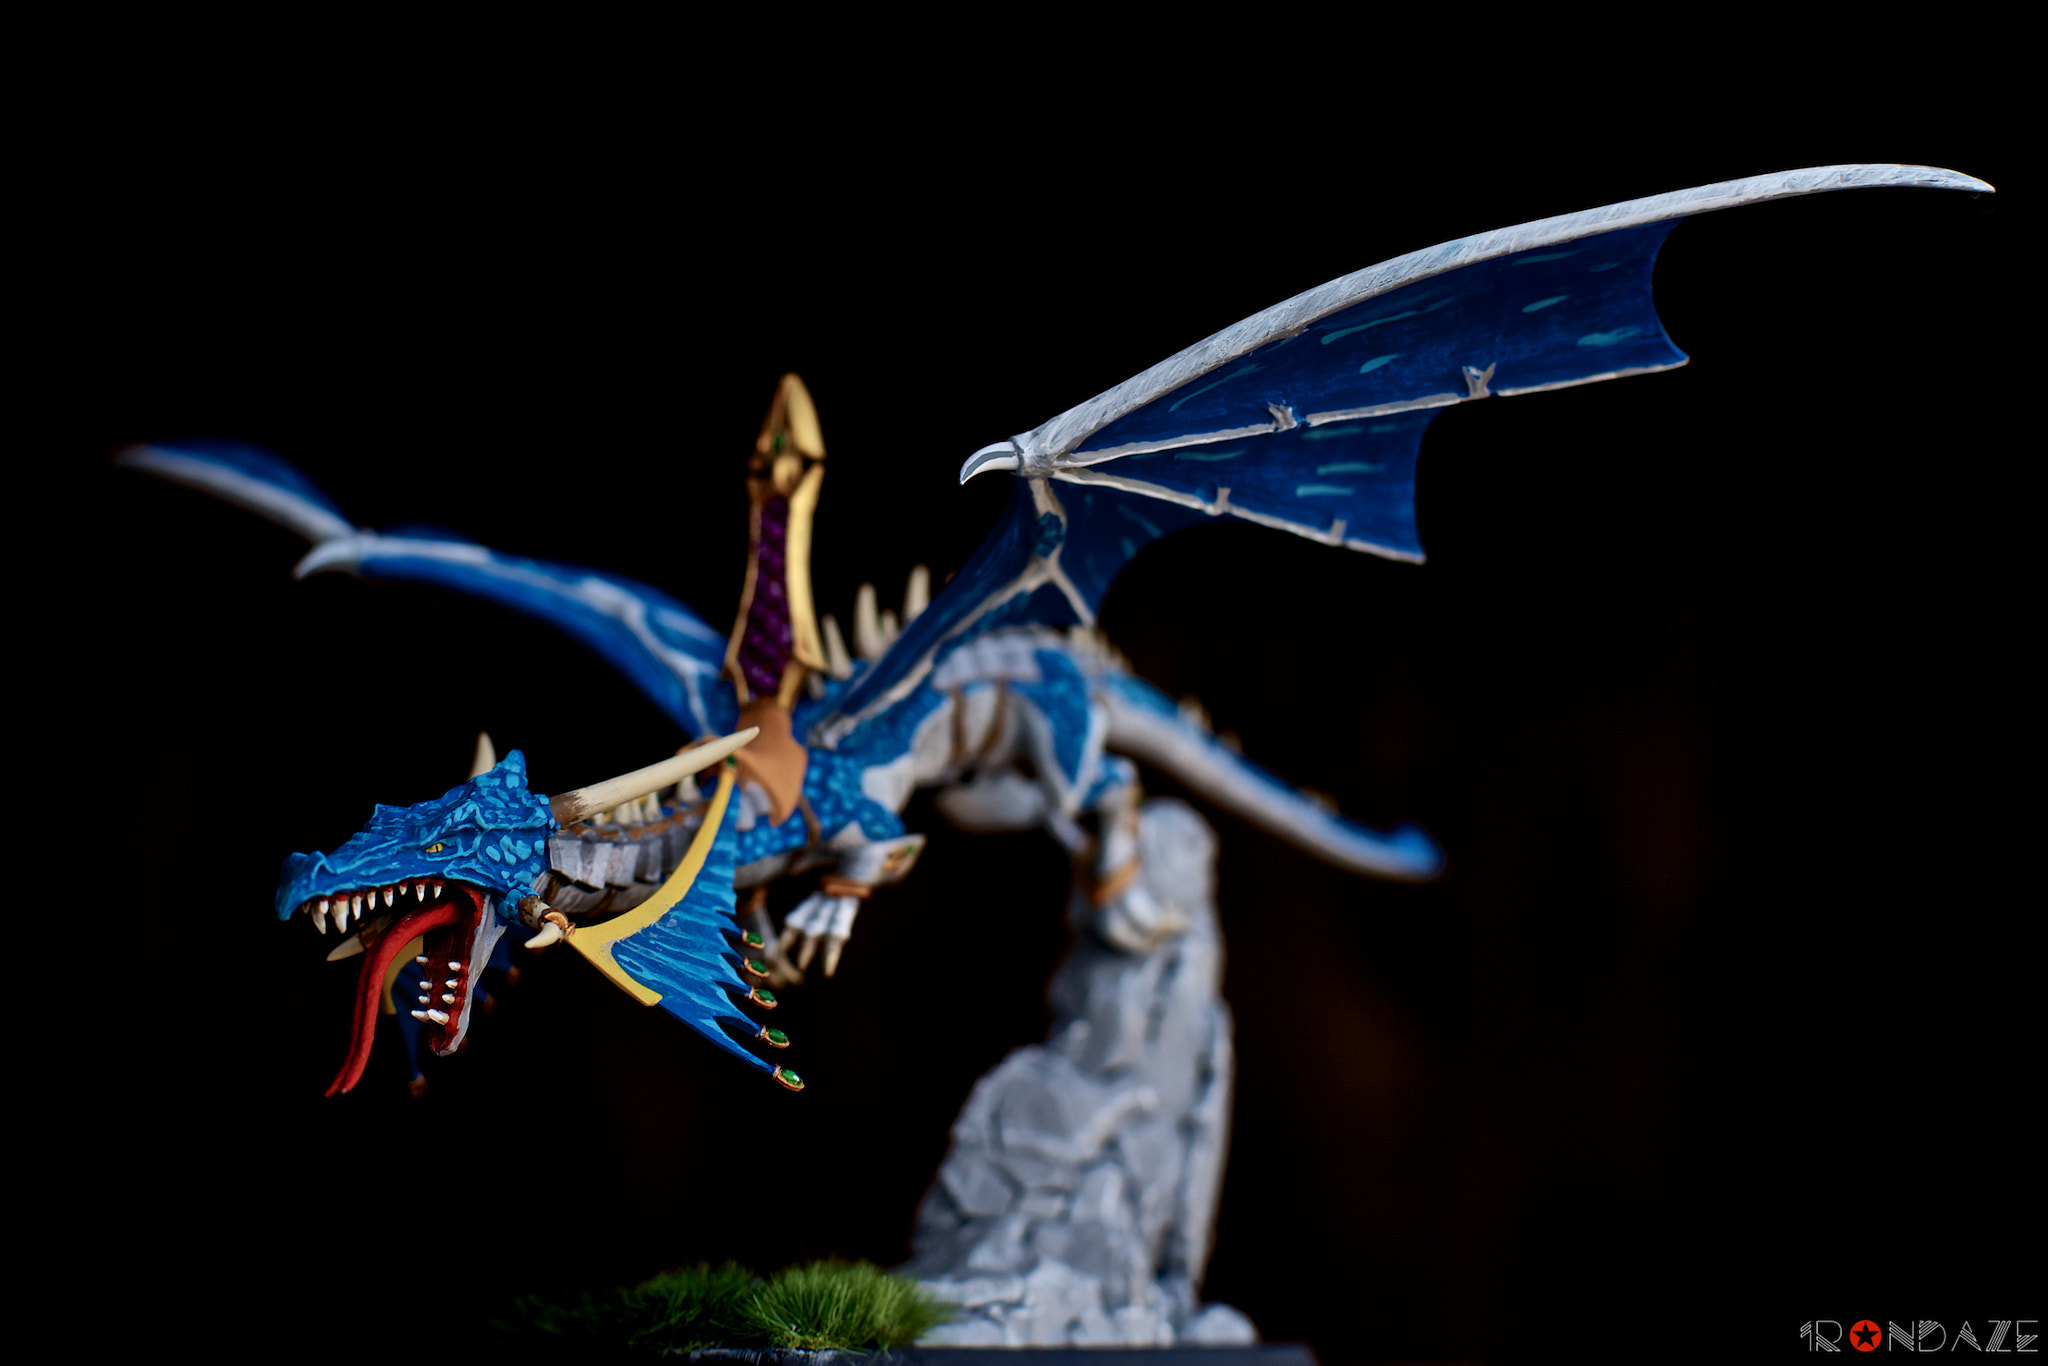 Photograph Blue Dragon by Irondaze  on 500px